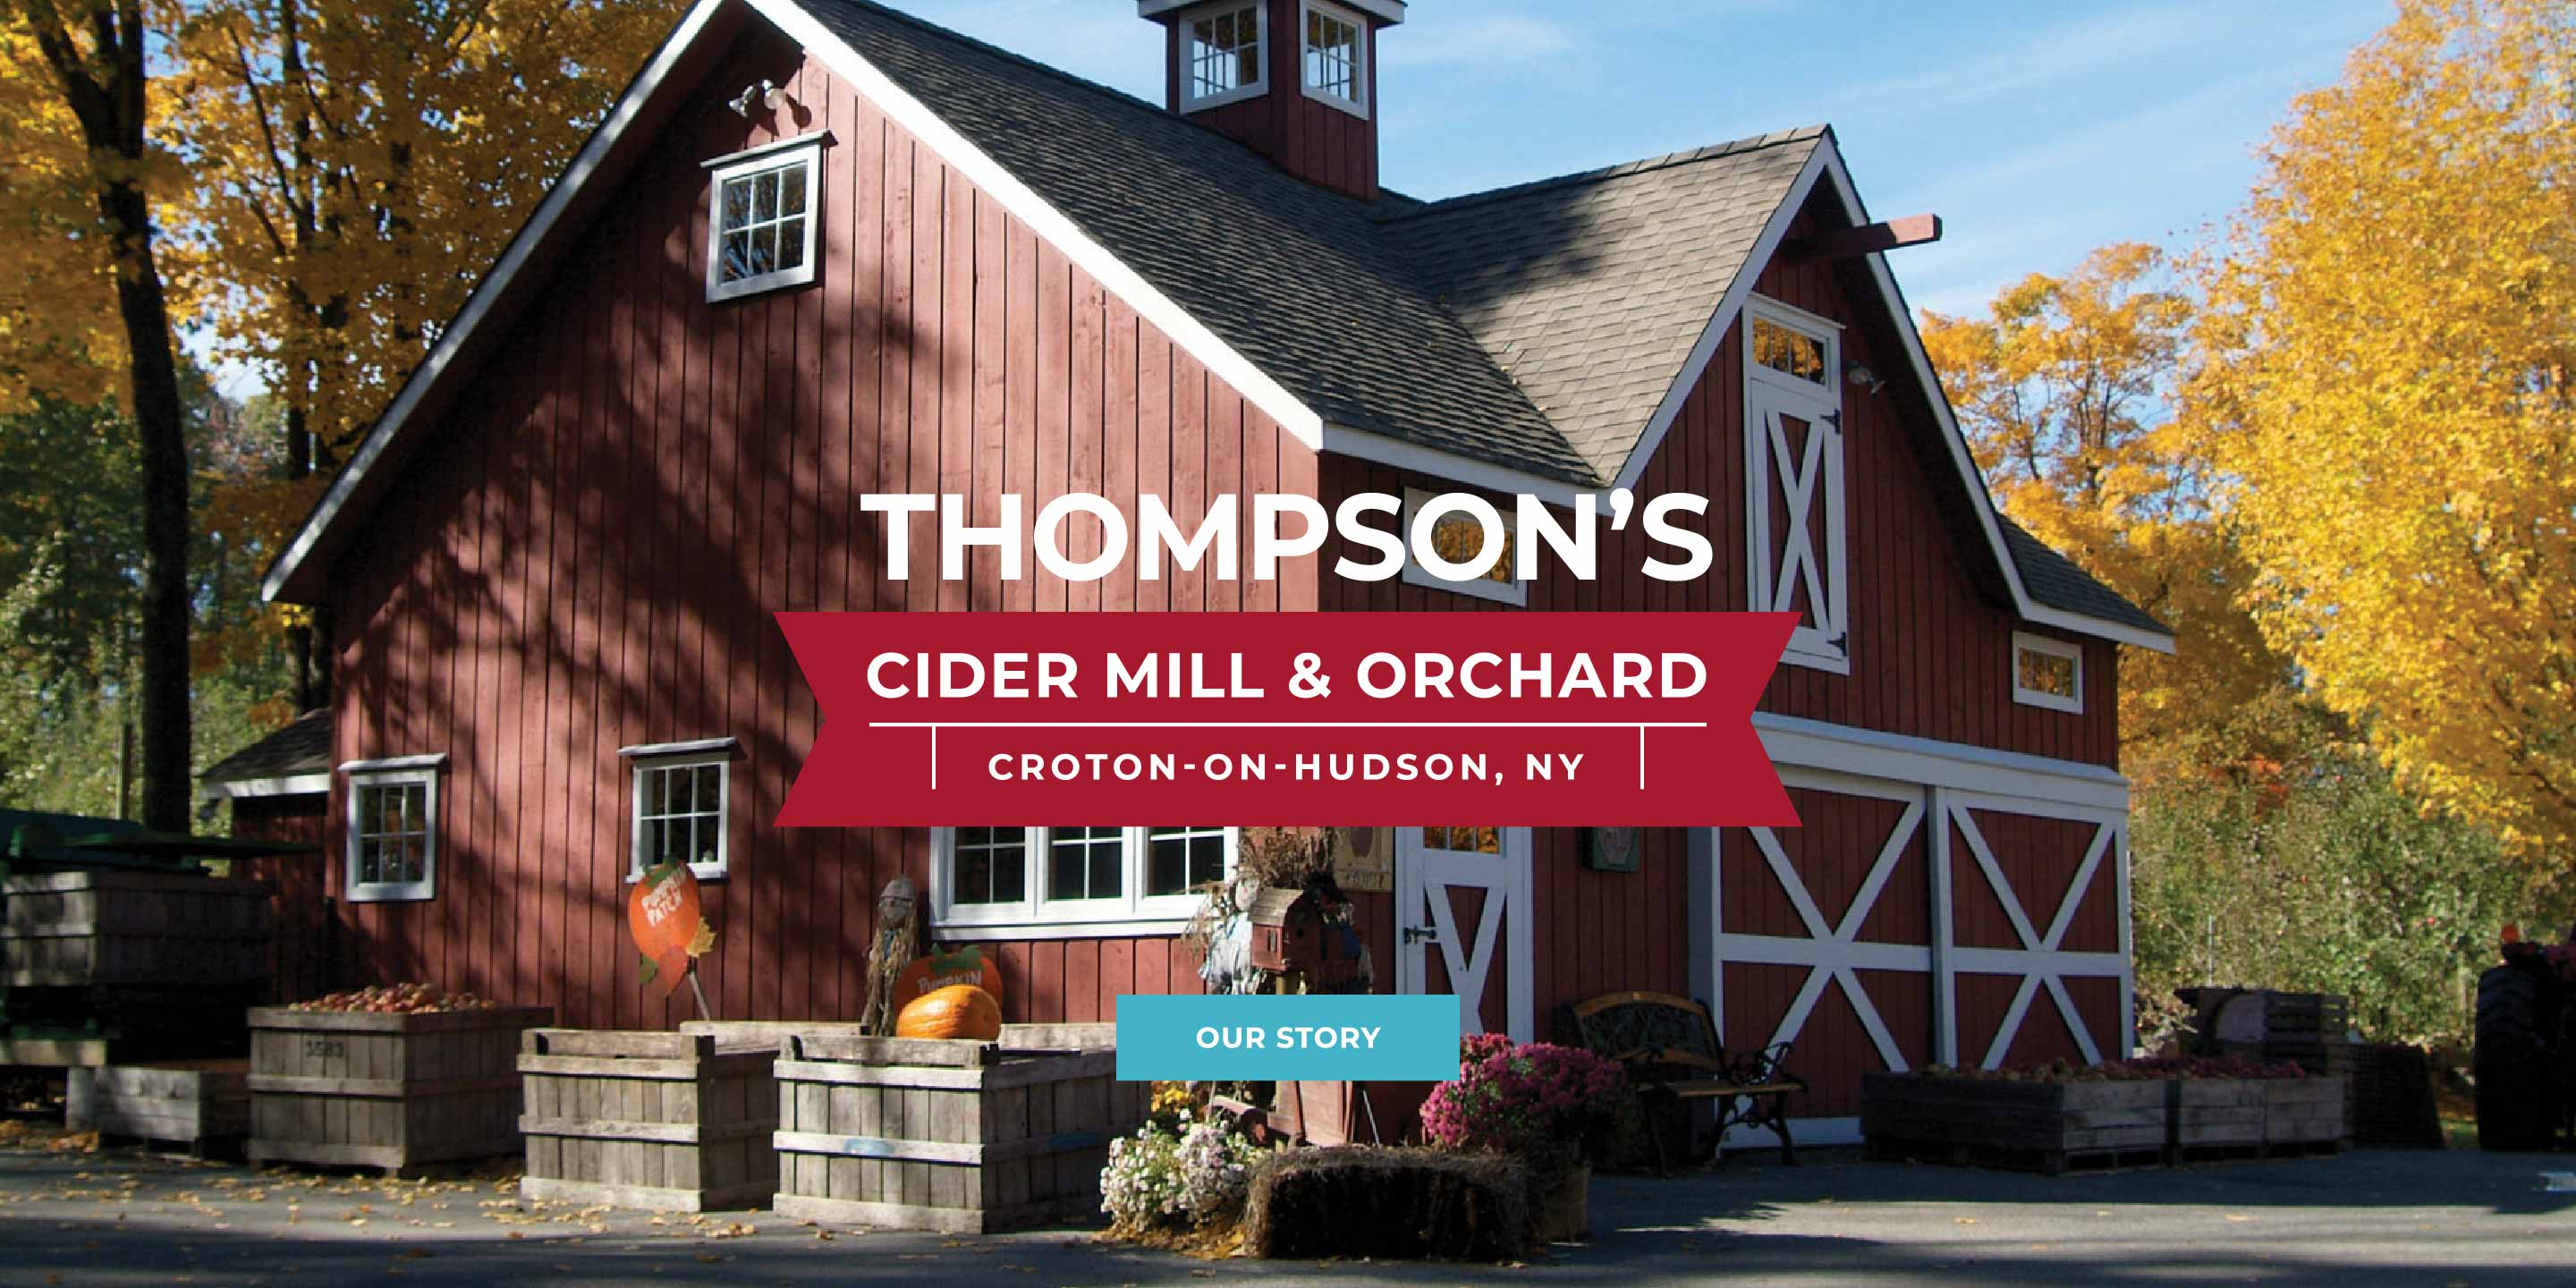 Thompsons Cider Mill and Orchard Croton on Hudson NY